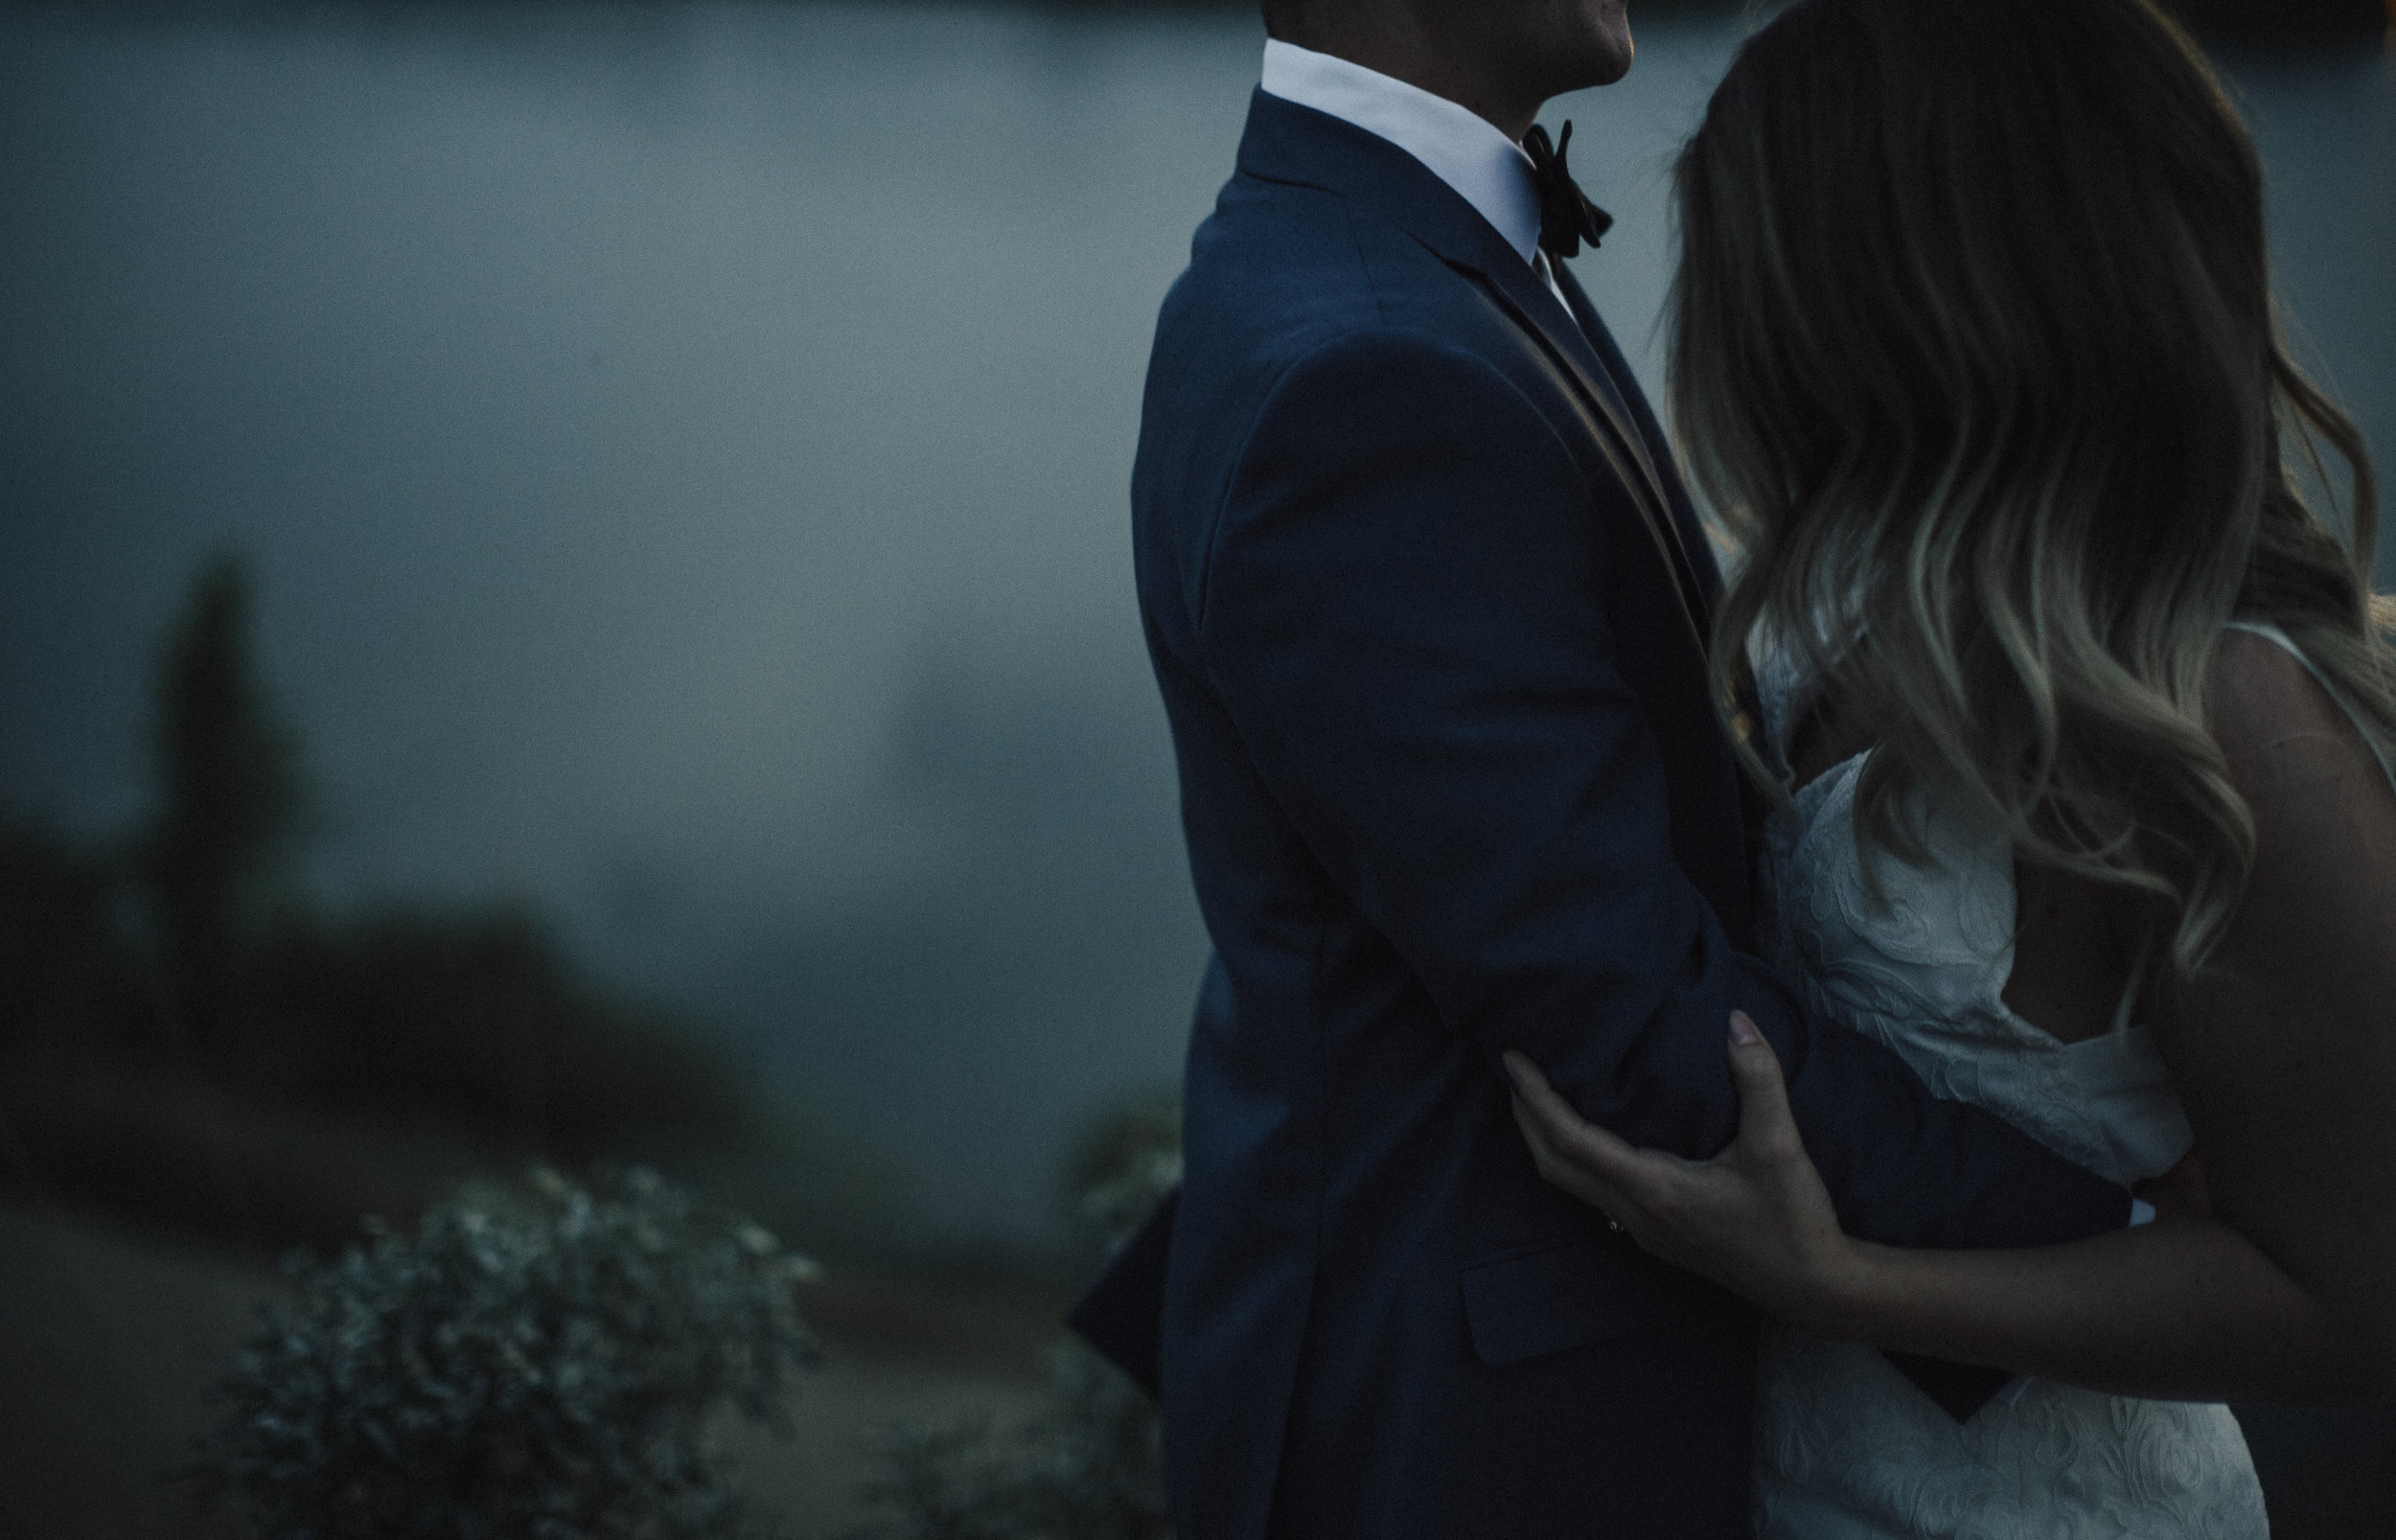 boho bride and groom cuddling in a moody evening setting deMo Photography